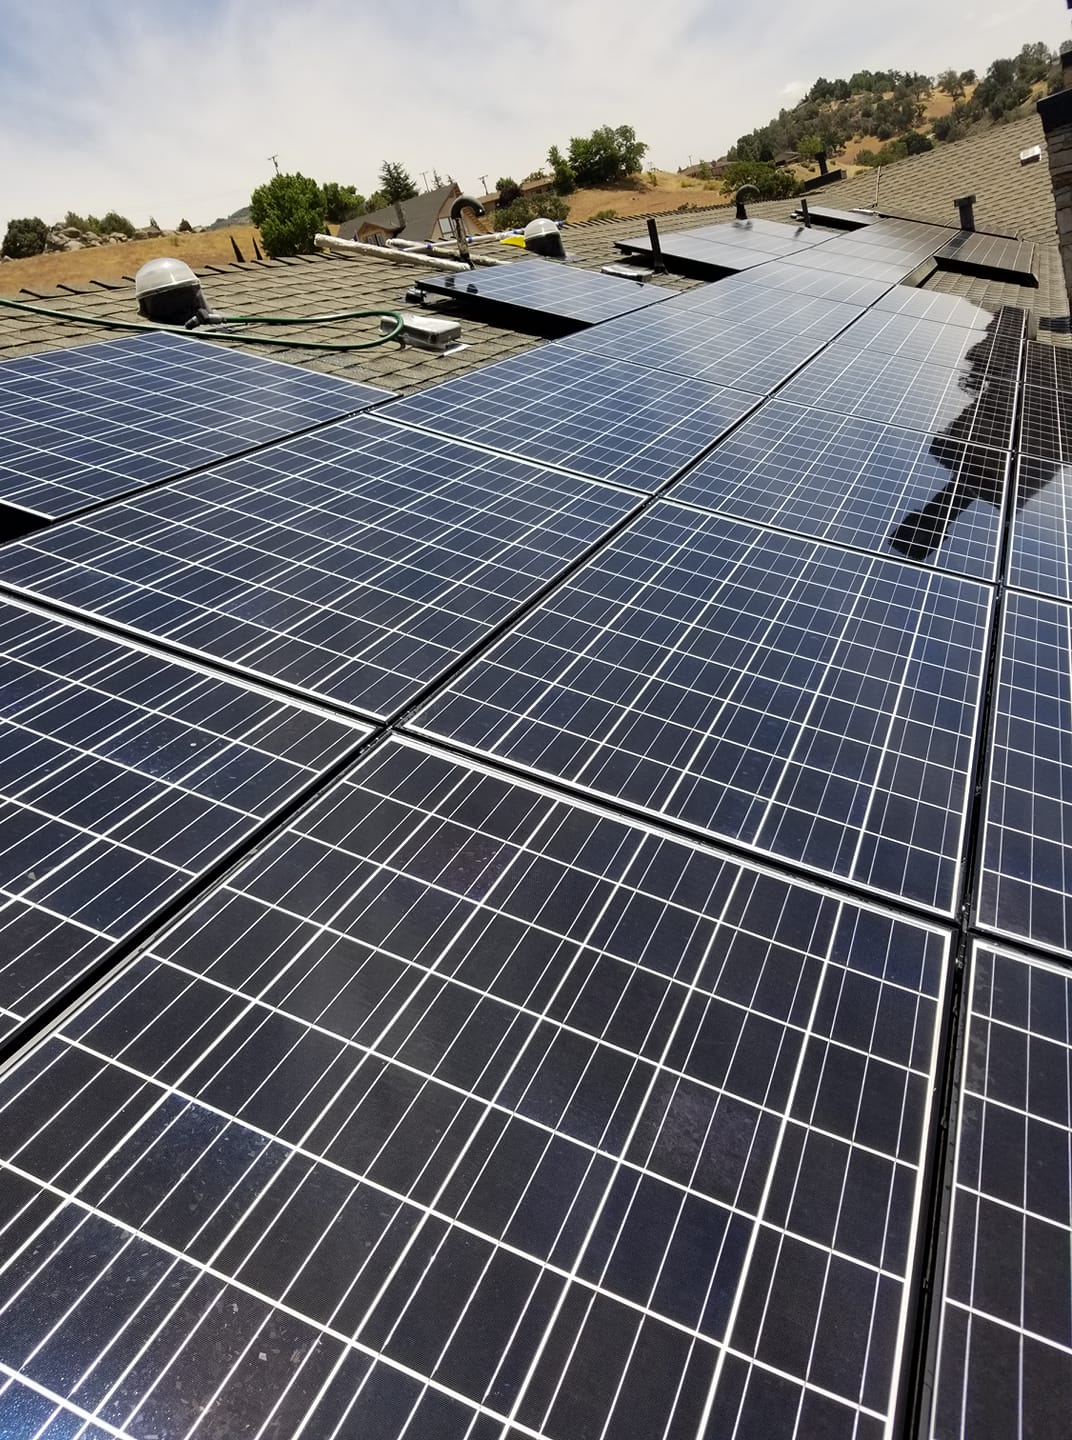 Bakersfield Solar Panel Cleaning, Bakersfield Solar Cleaning